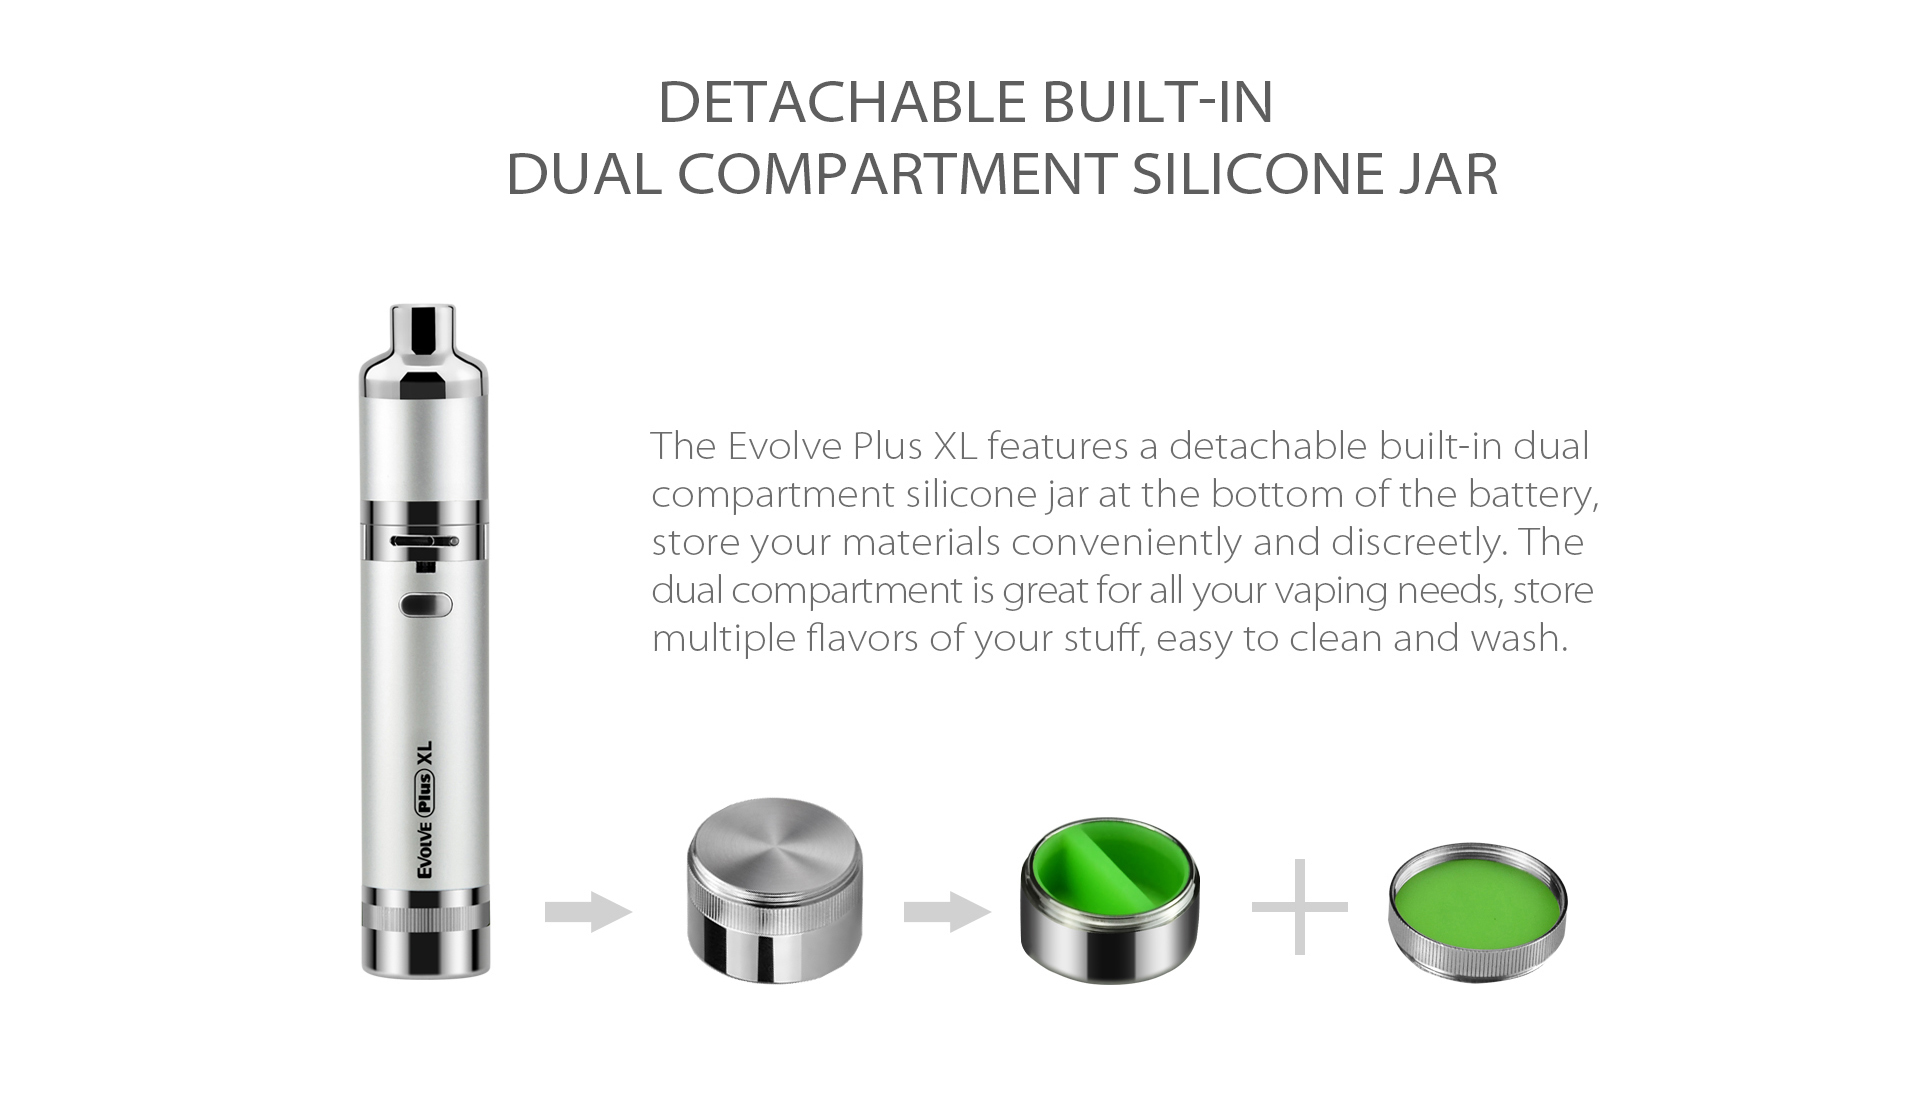 Yocan Evolve Plus XL Vaporizer 2020 version features a detachable built-in dual compartment silicone jar at the bottom of the battery.